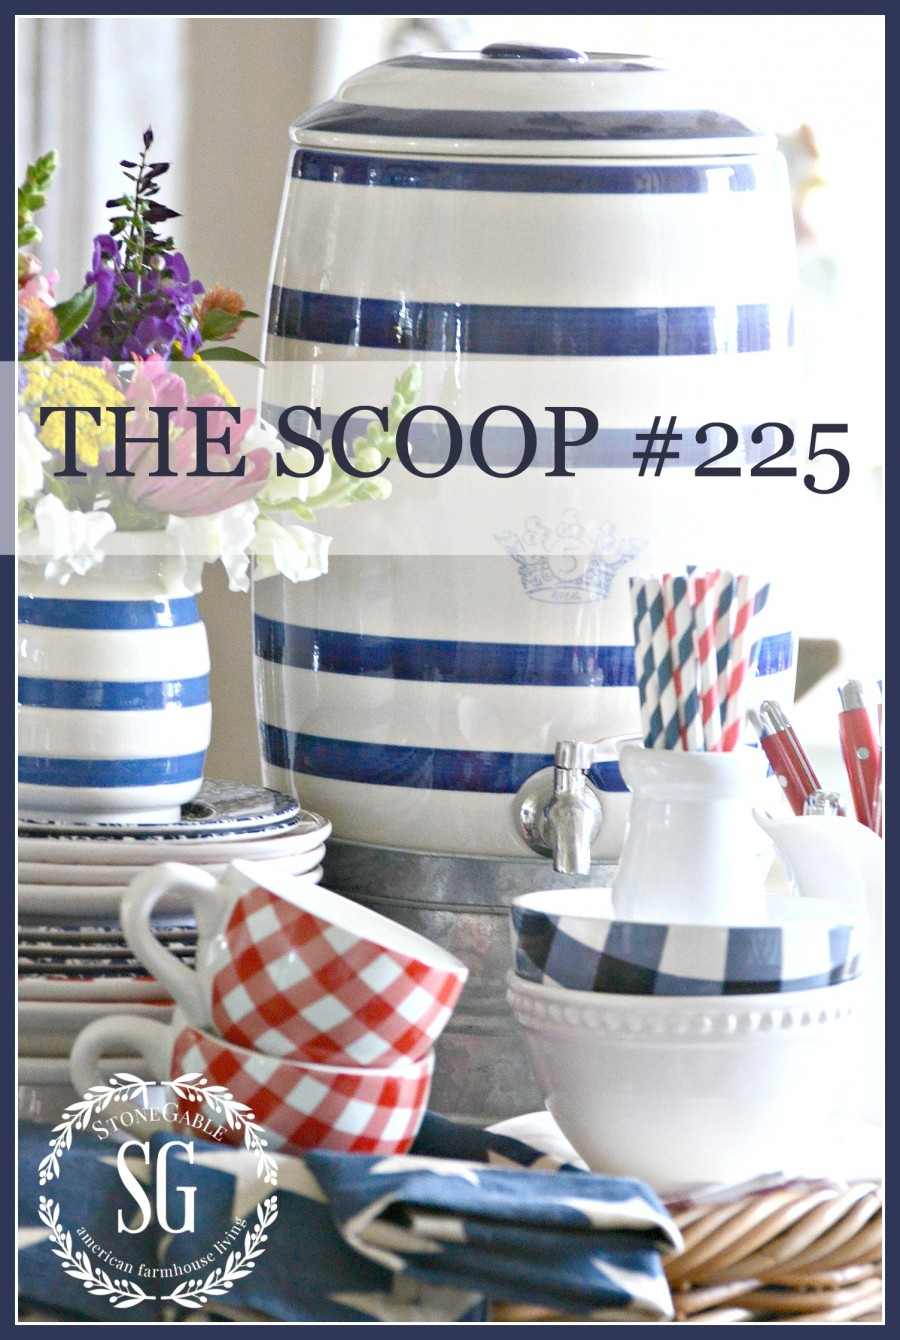 THE SCOOP #225- Hundreds of home and garden ideas!